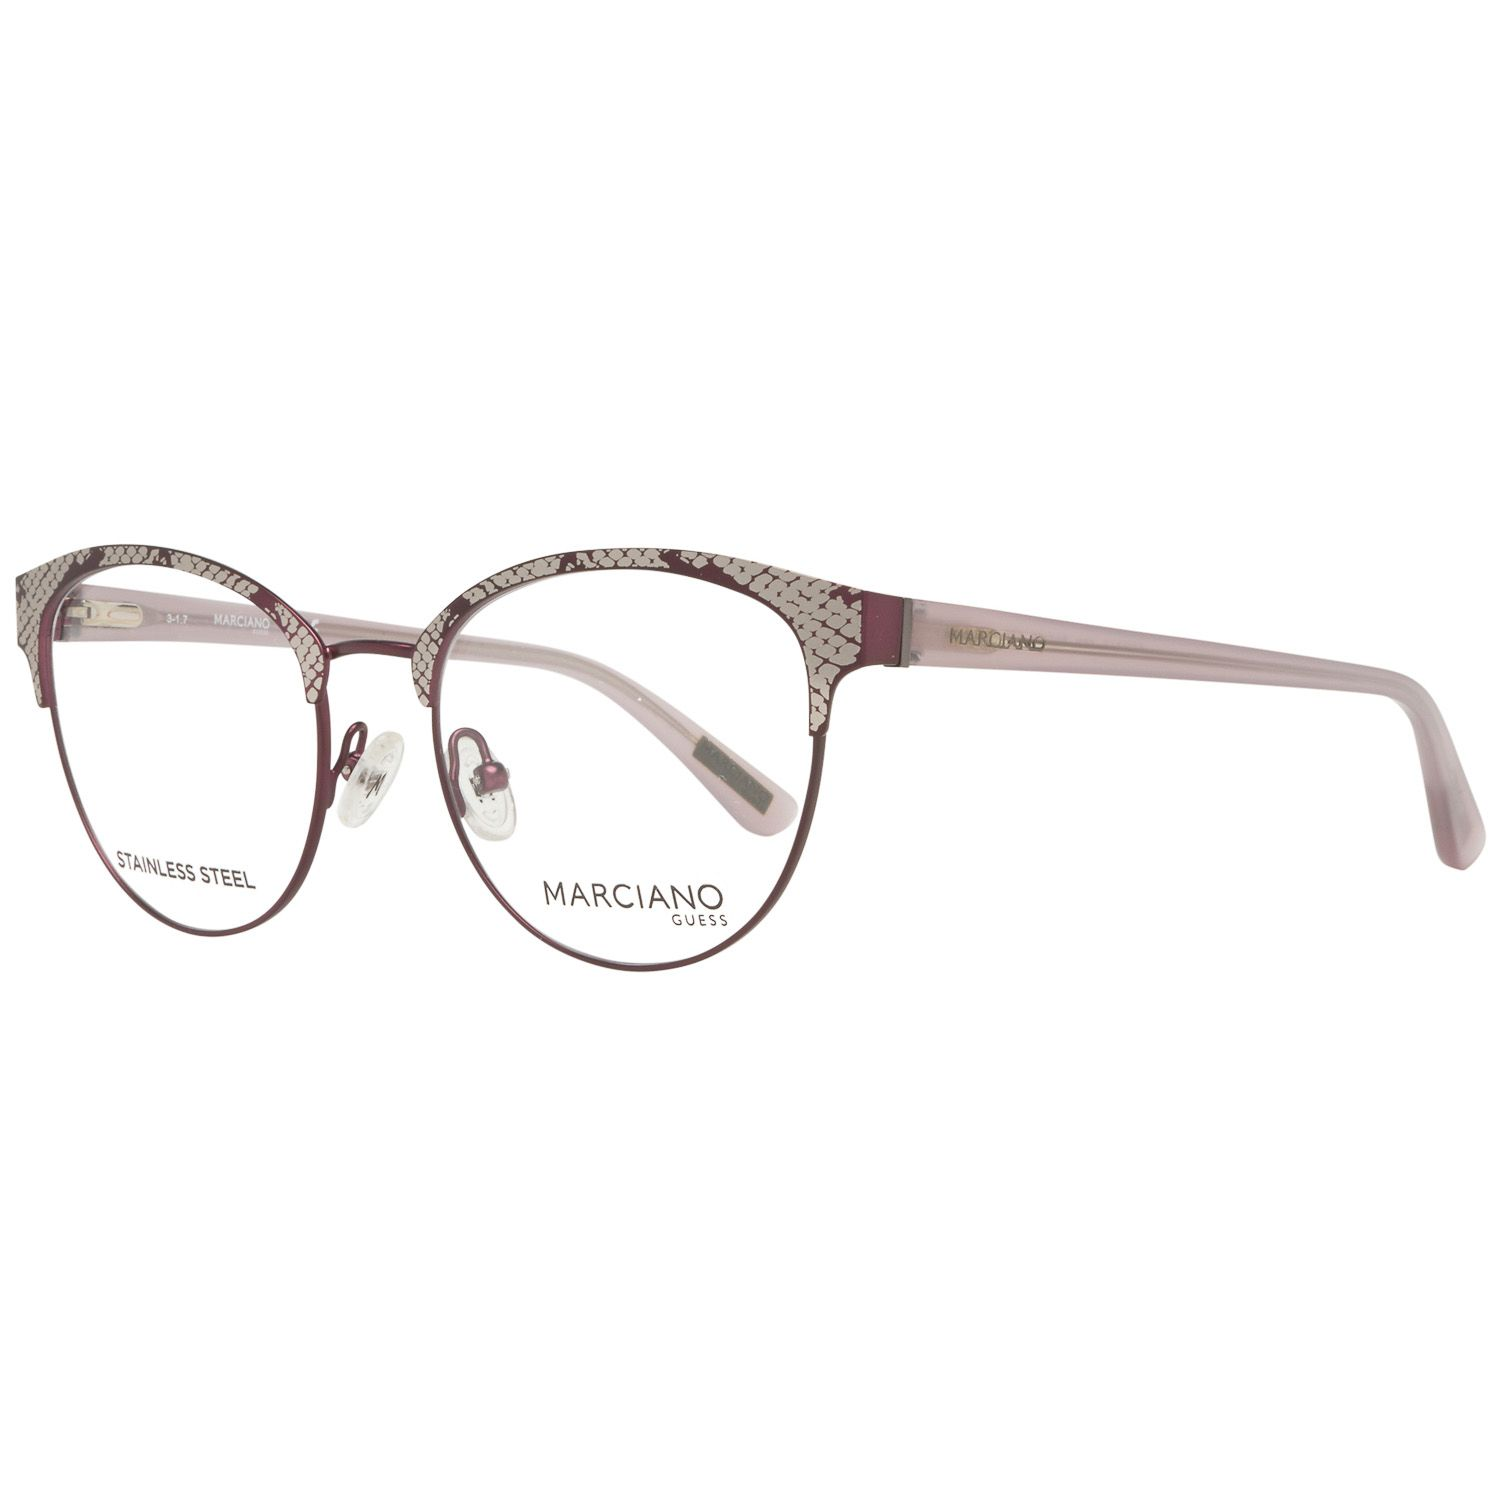 Guess by Marciano Optical Frame GM0317 082 50 Women Burgundy